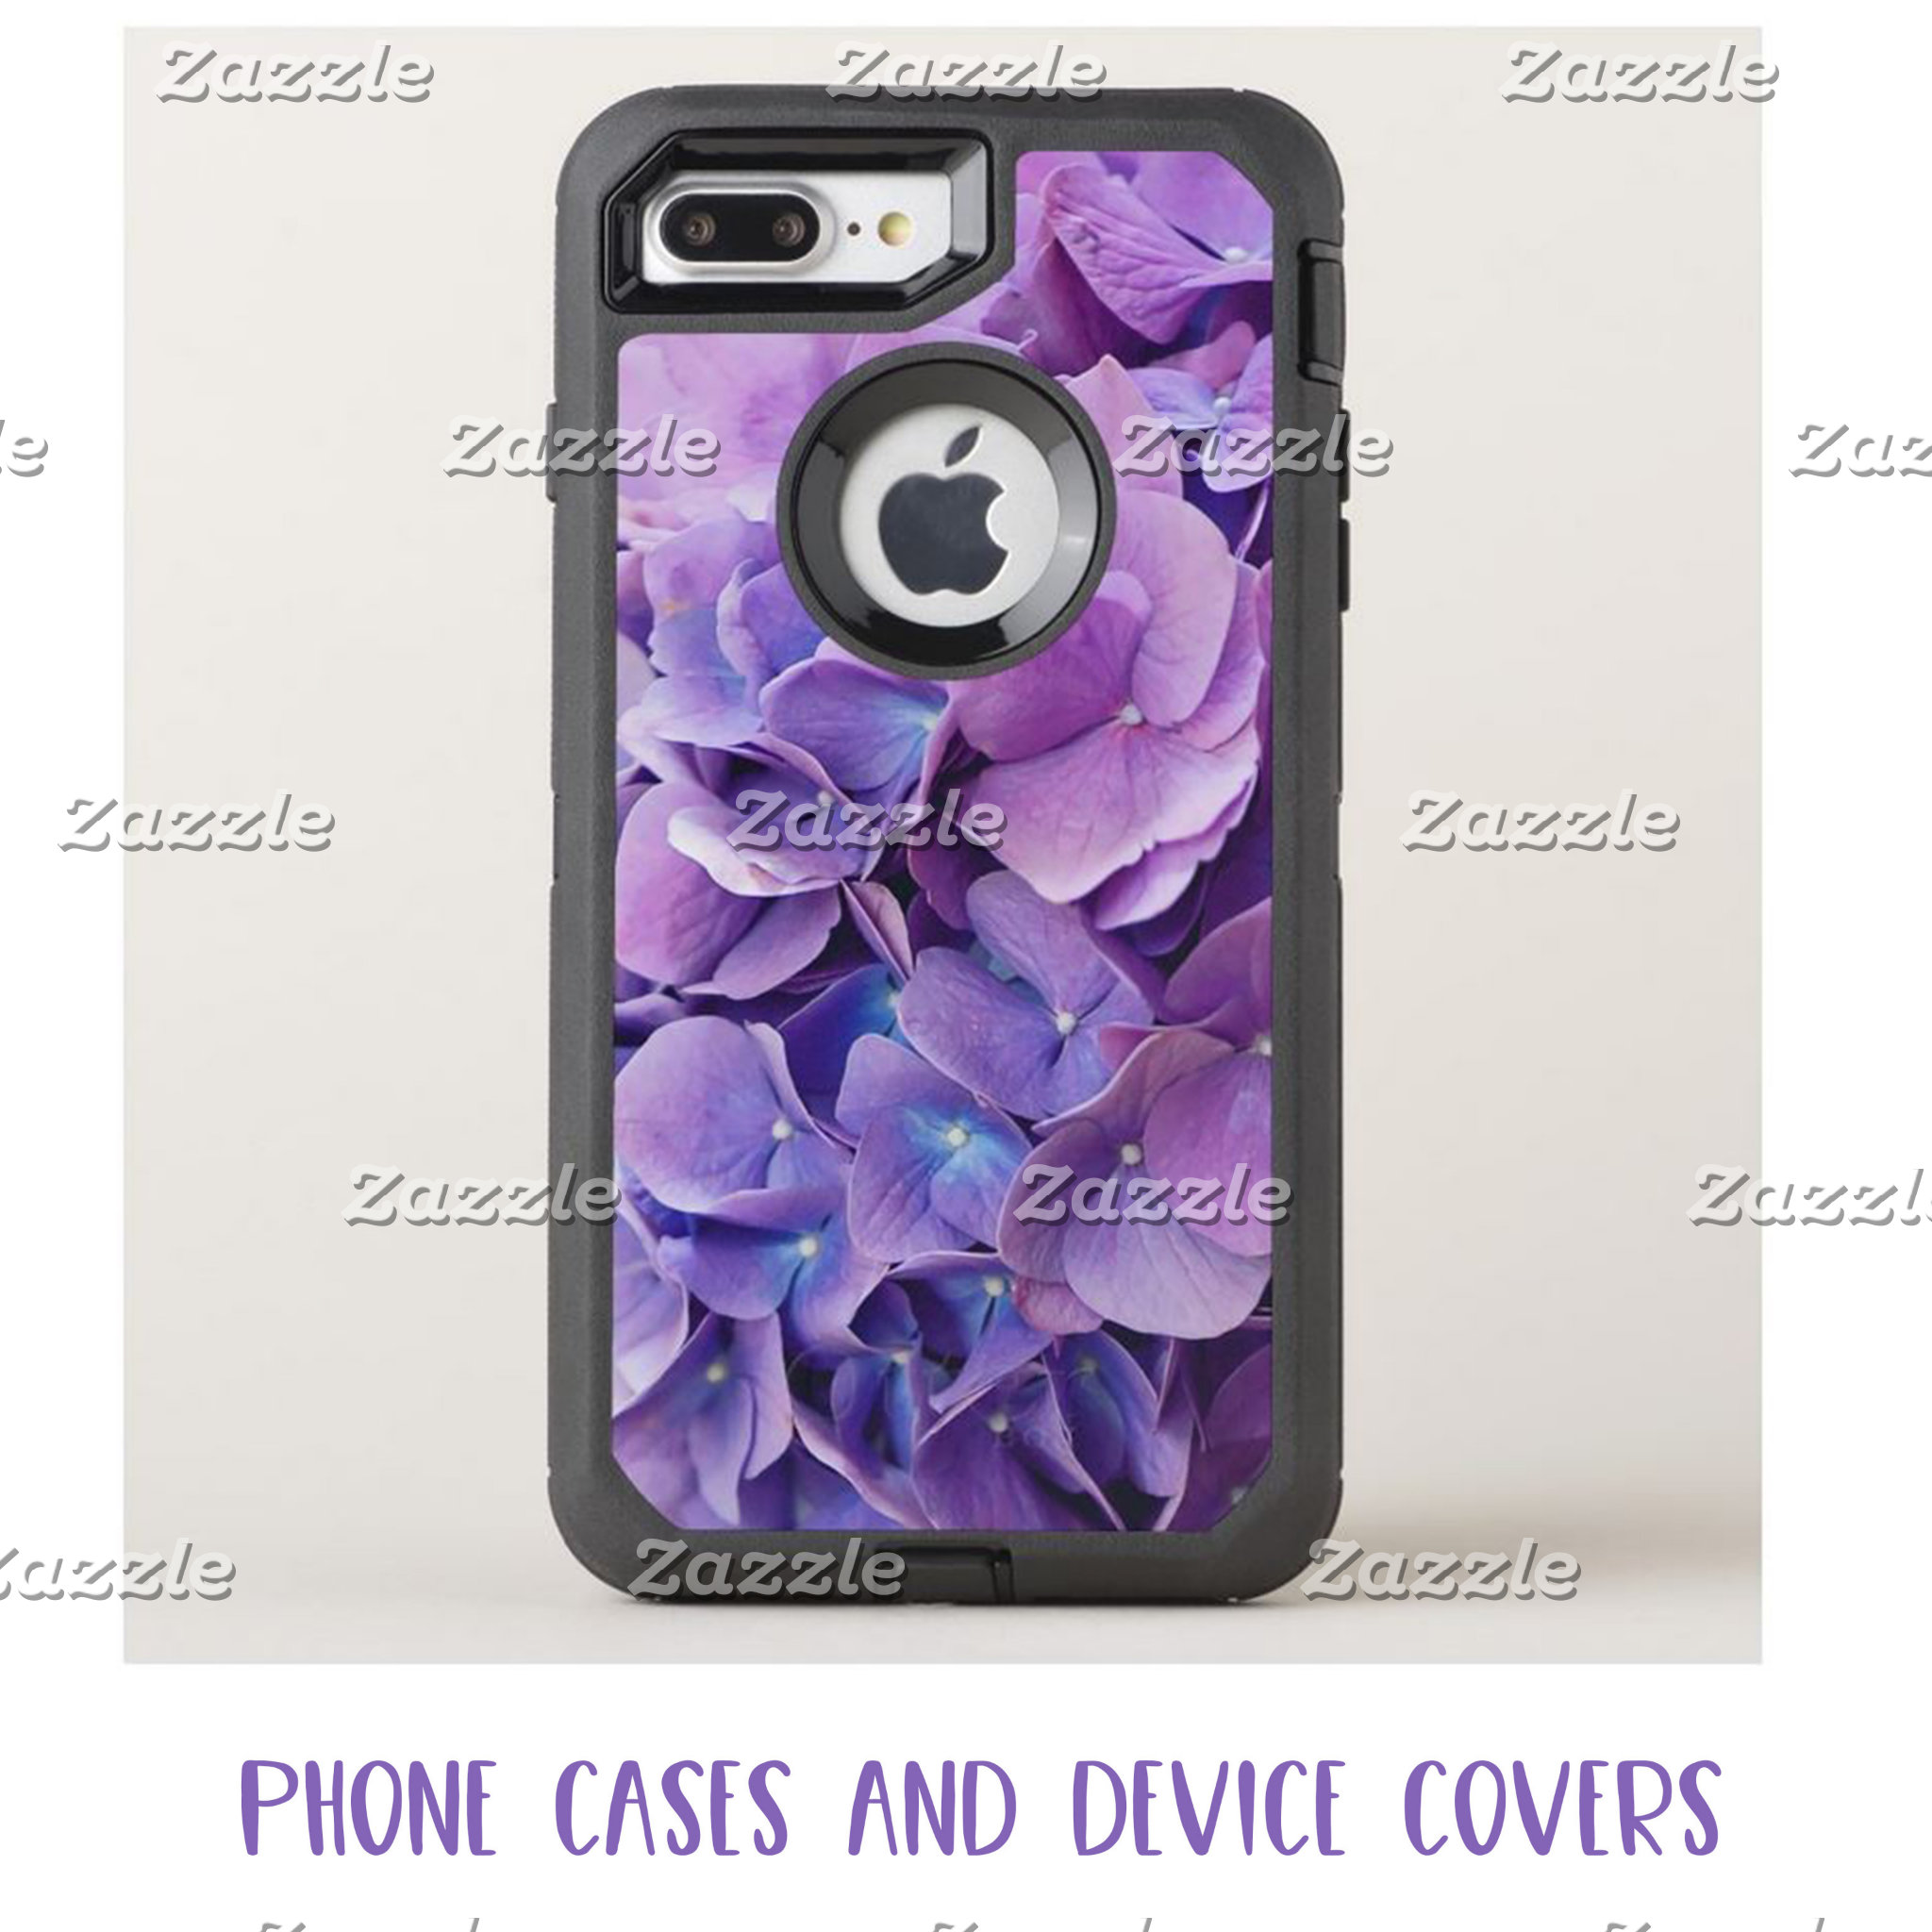 Phone Cases & Device Covers